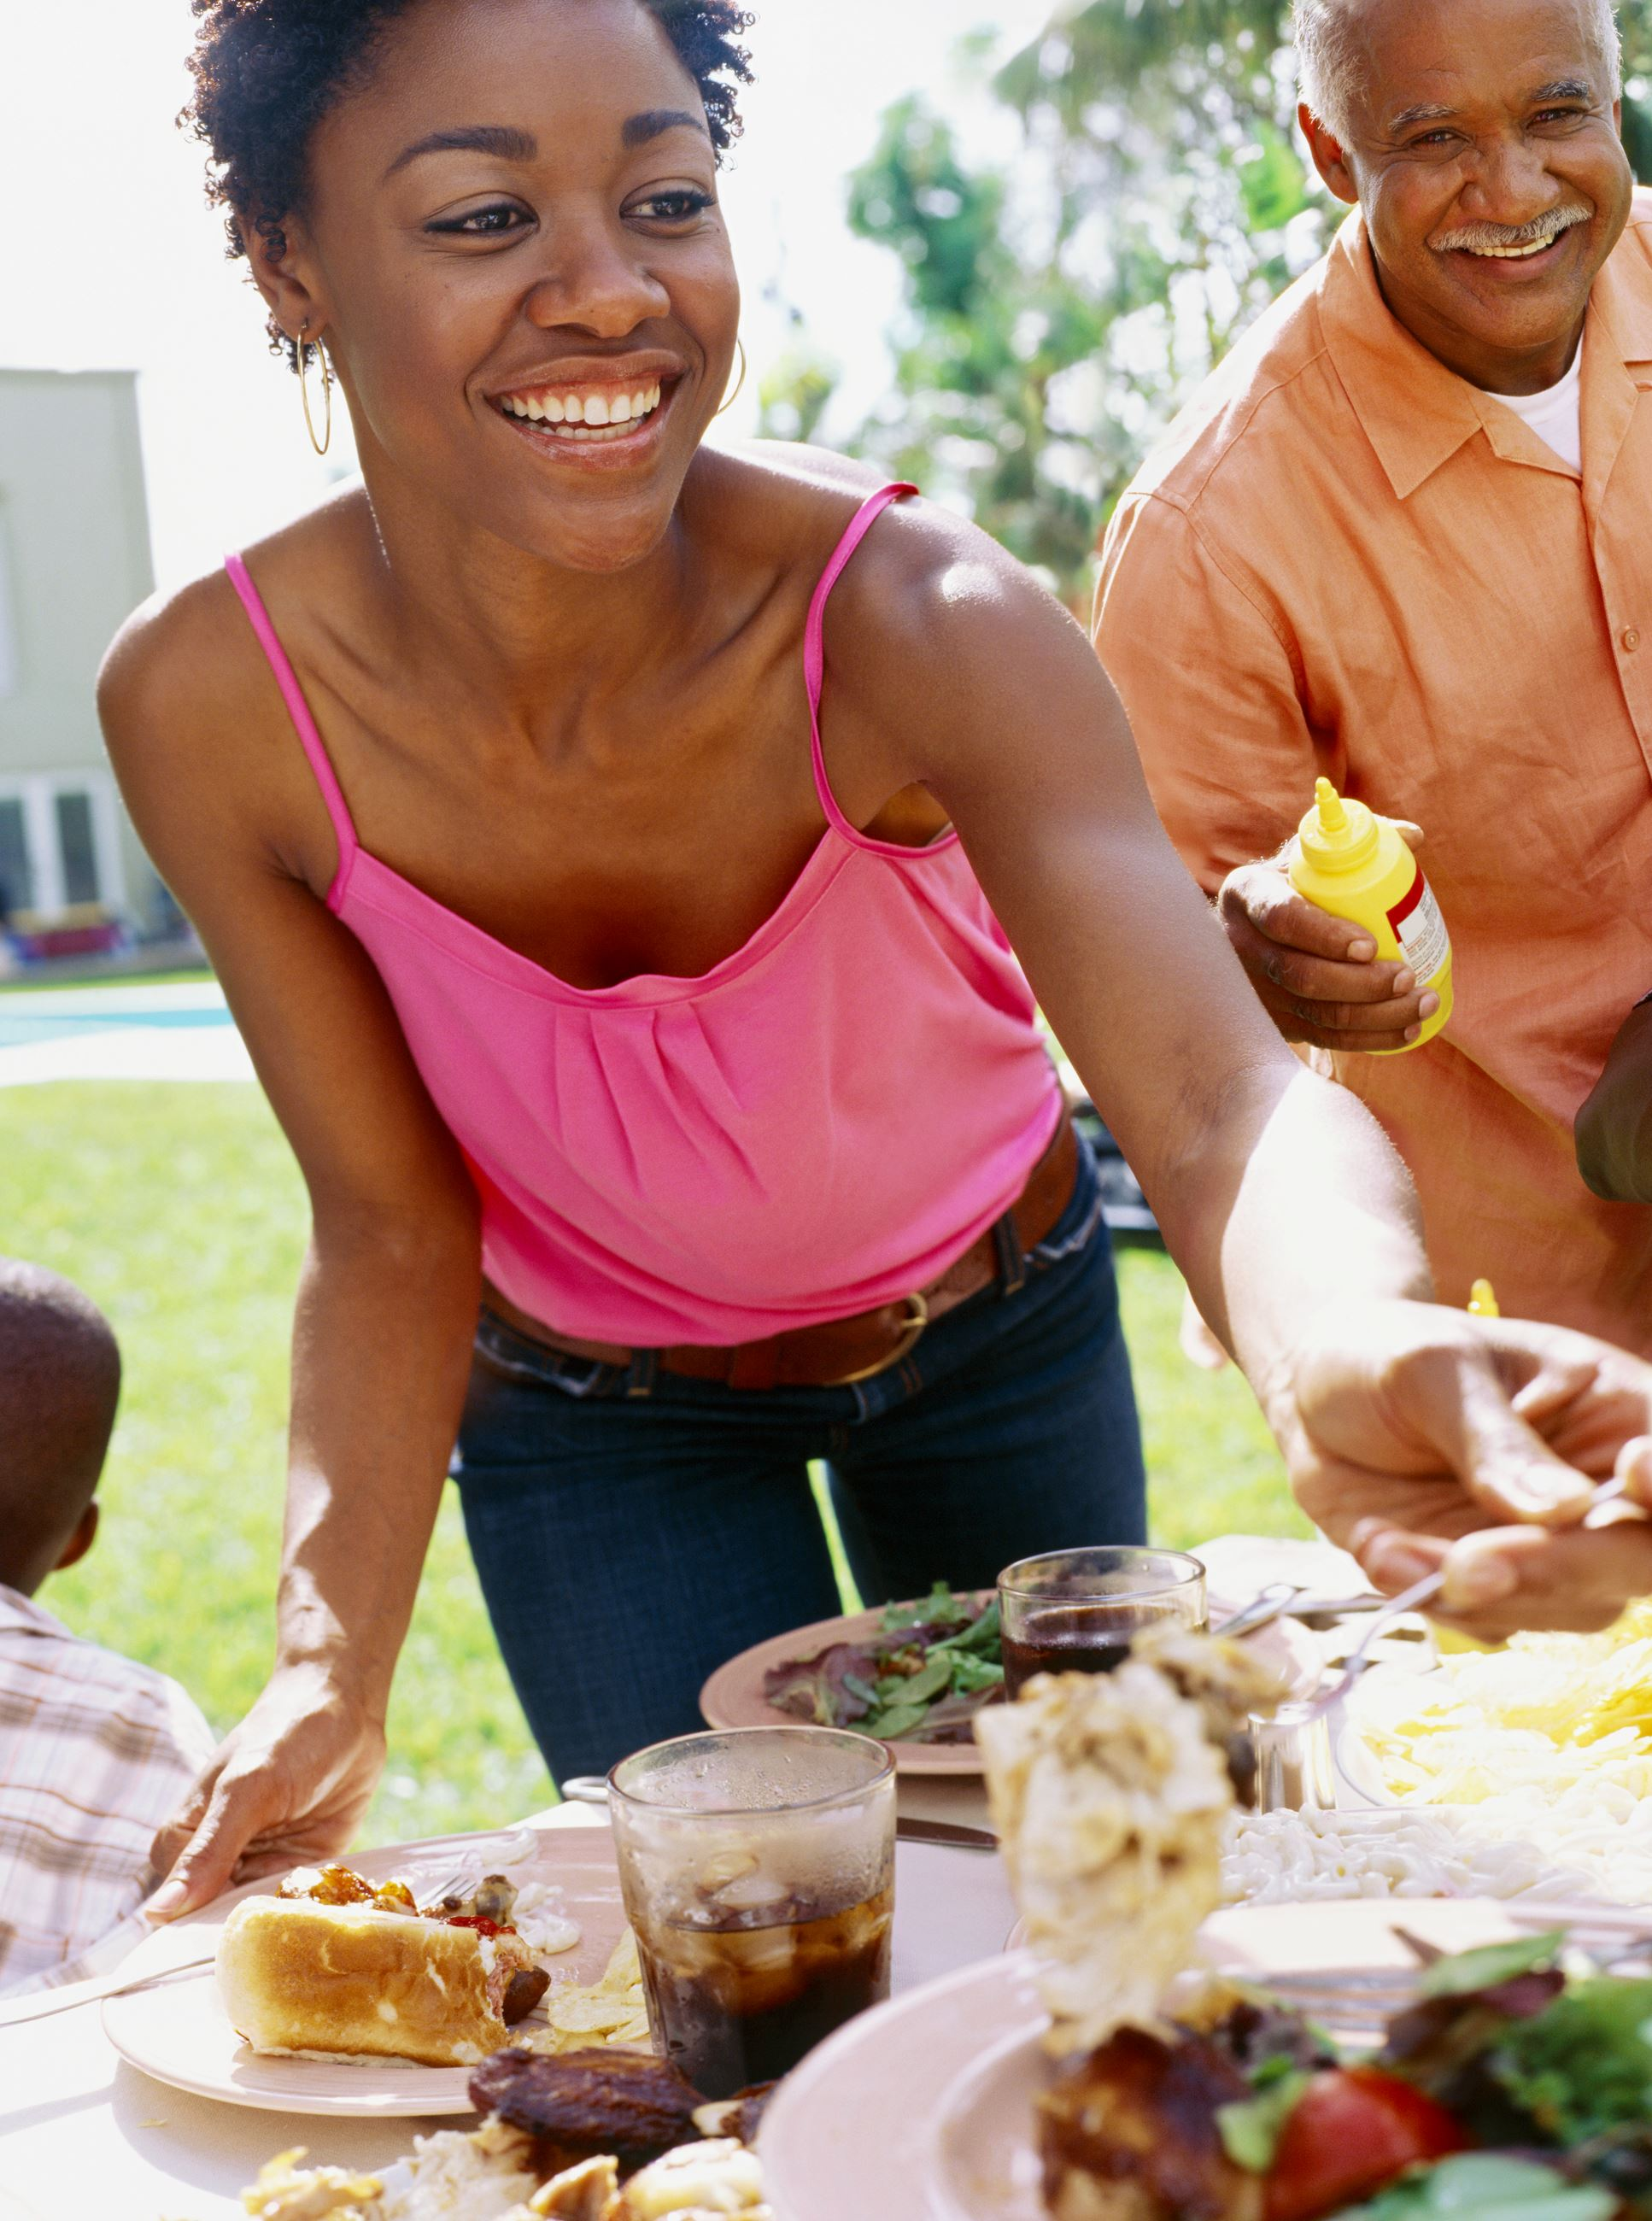 Cookout_ThinkstockPhotos-57281395